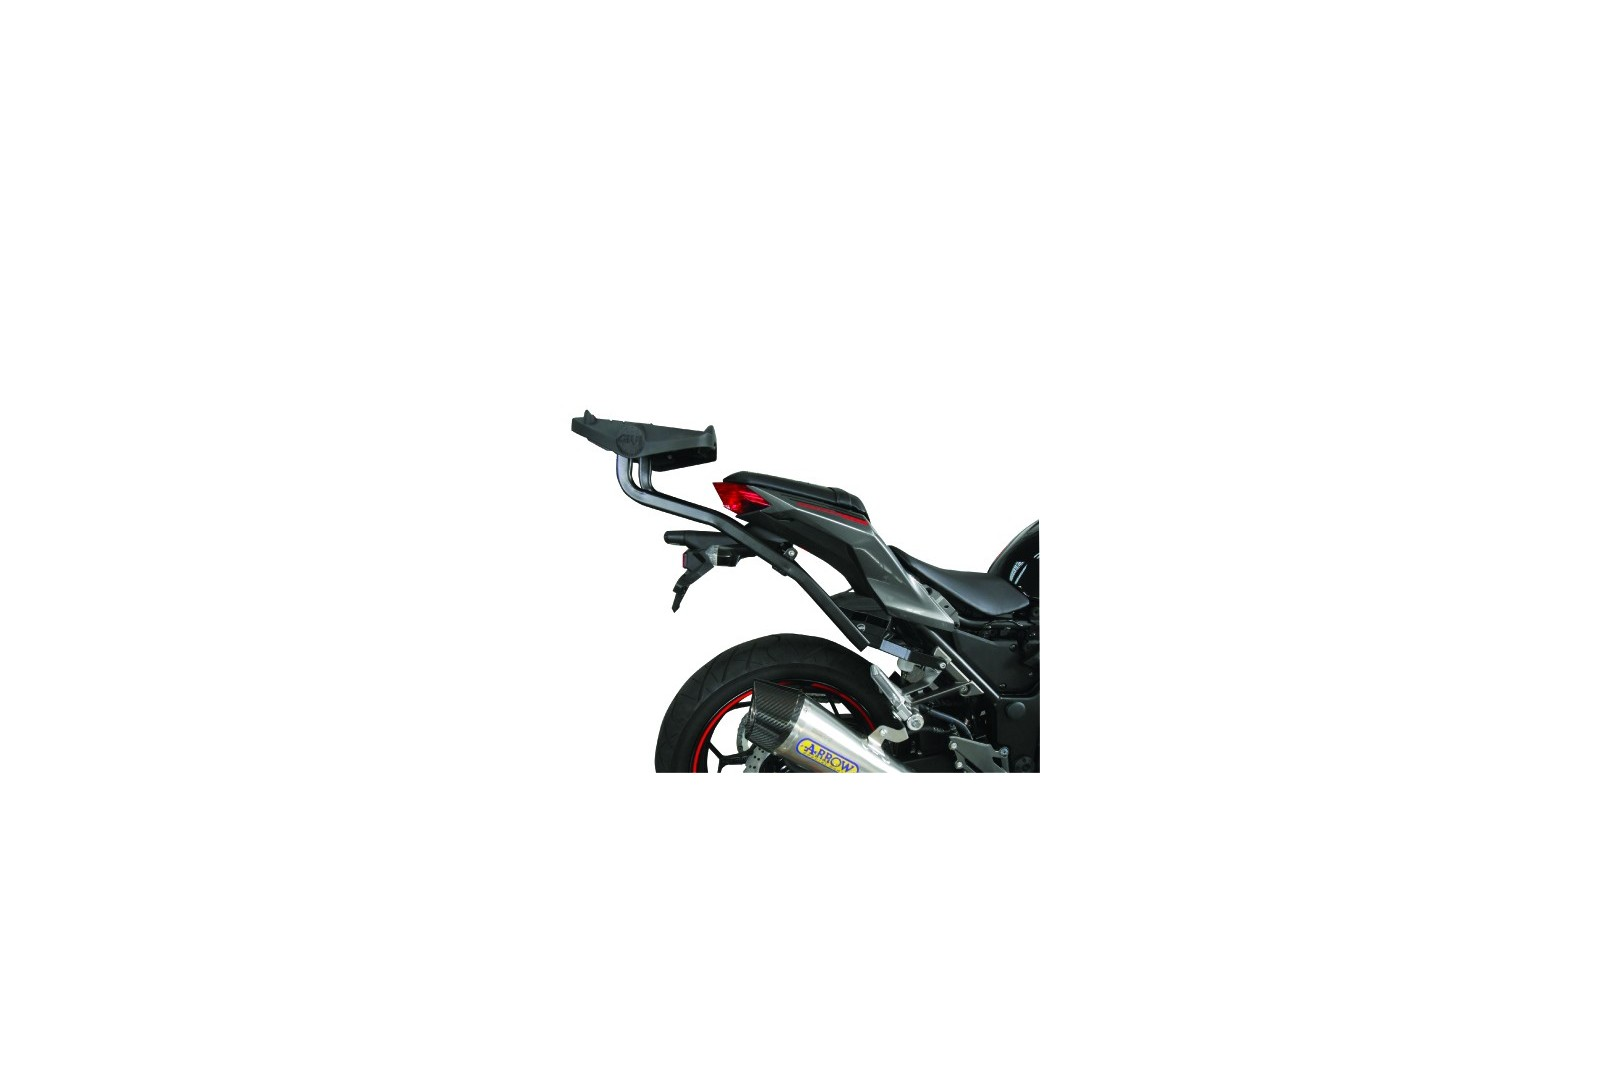 Kawasaki Ninja Luggage Rack